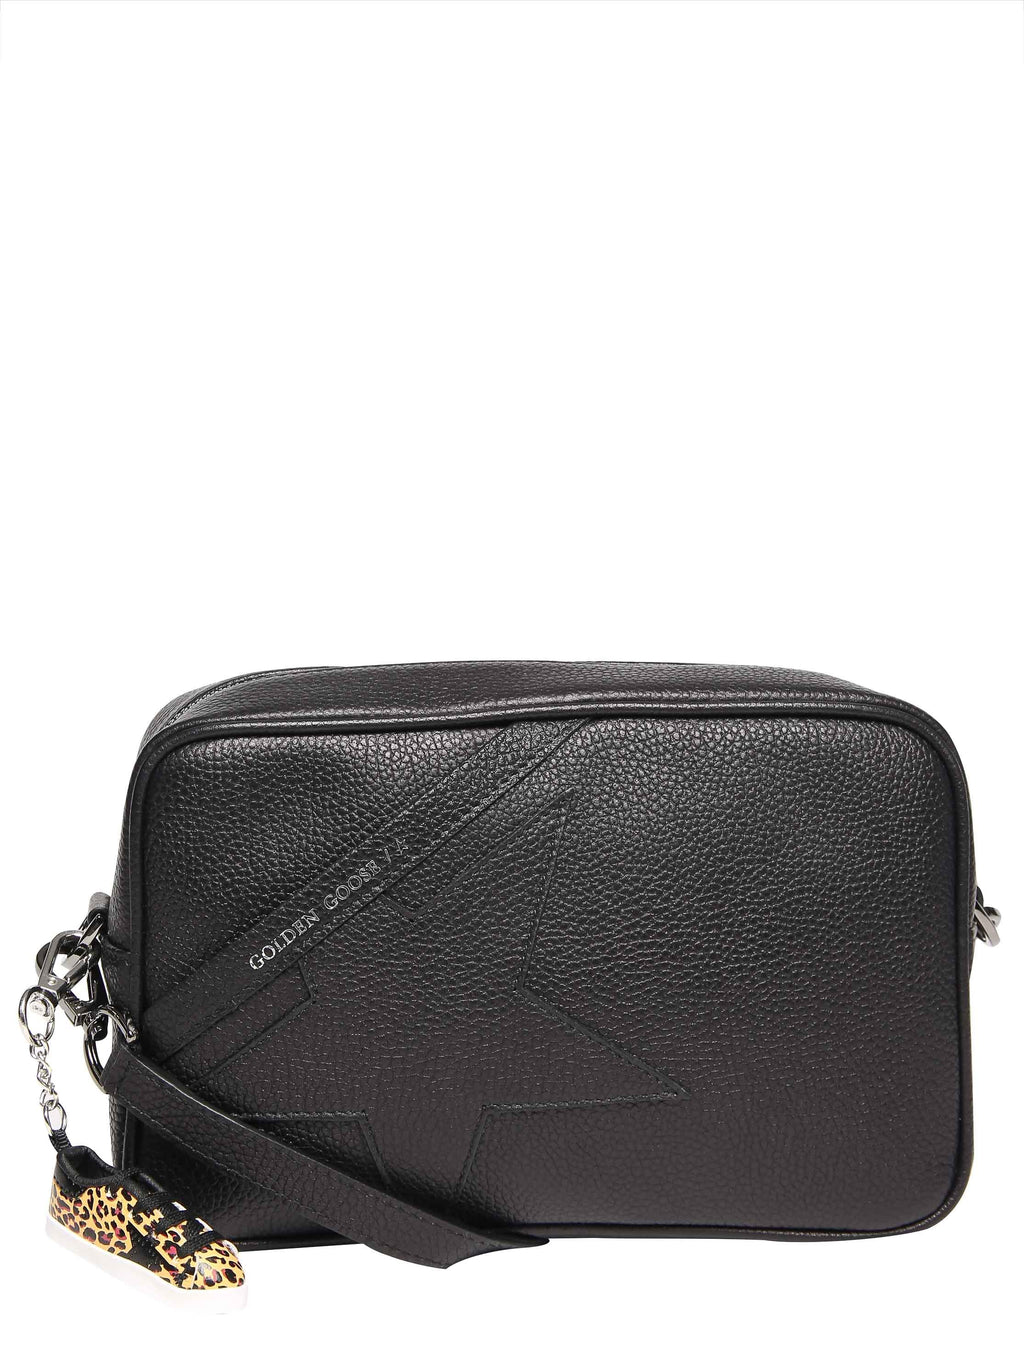 GOLDEN GOOSE Leather bag model Star Bag